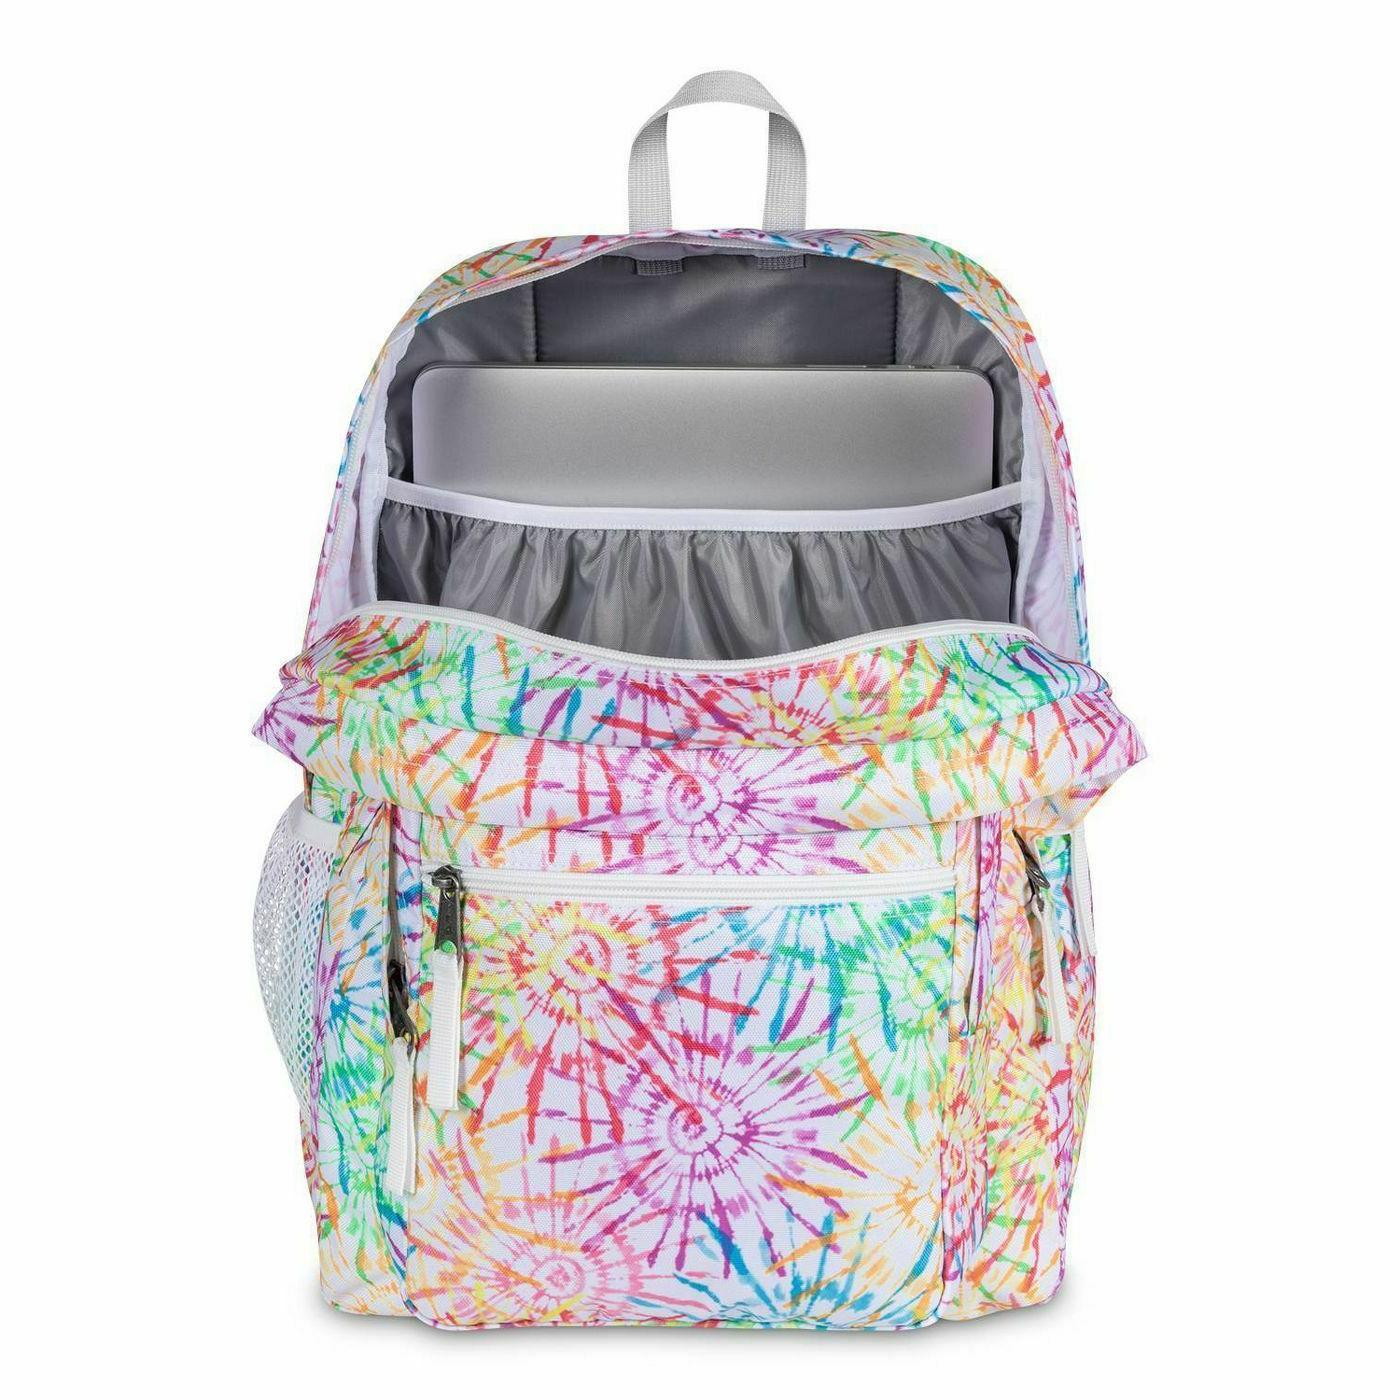 Trans by Supermax Backpack - Dizzle White